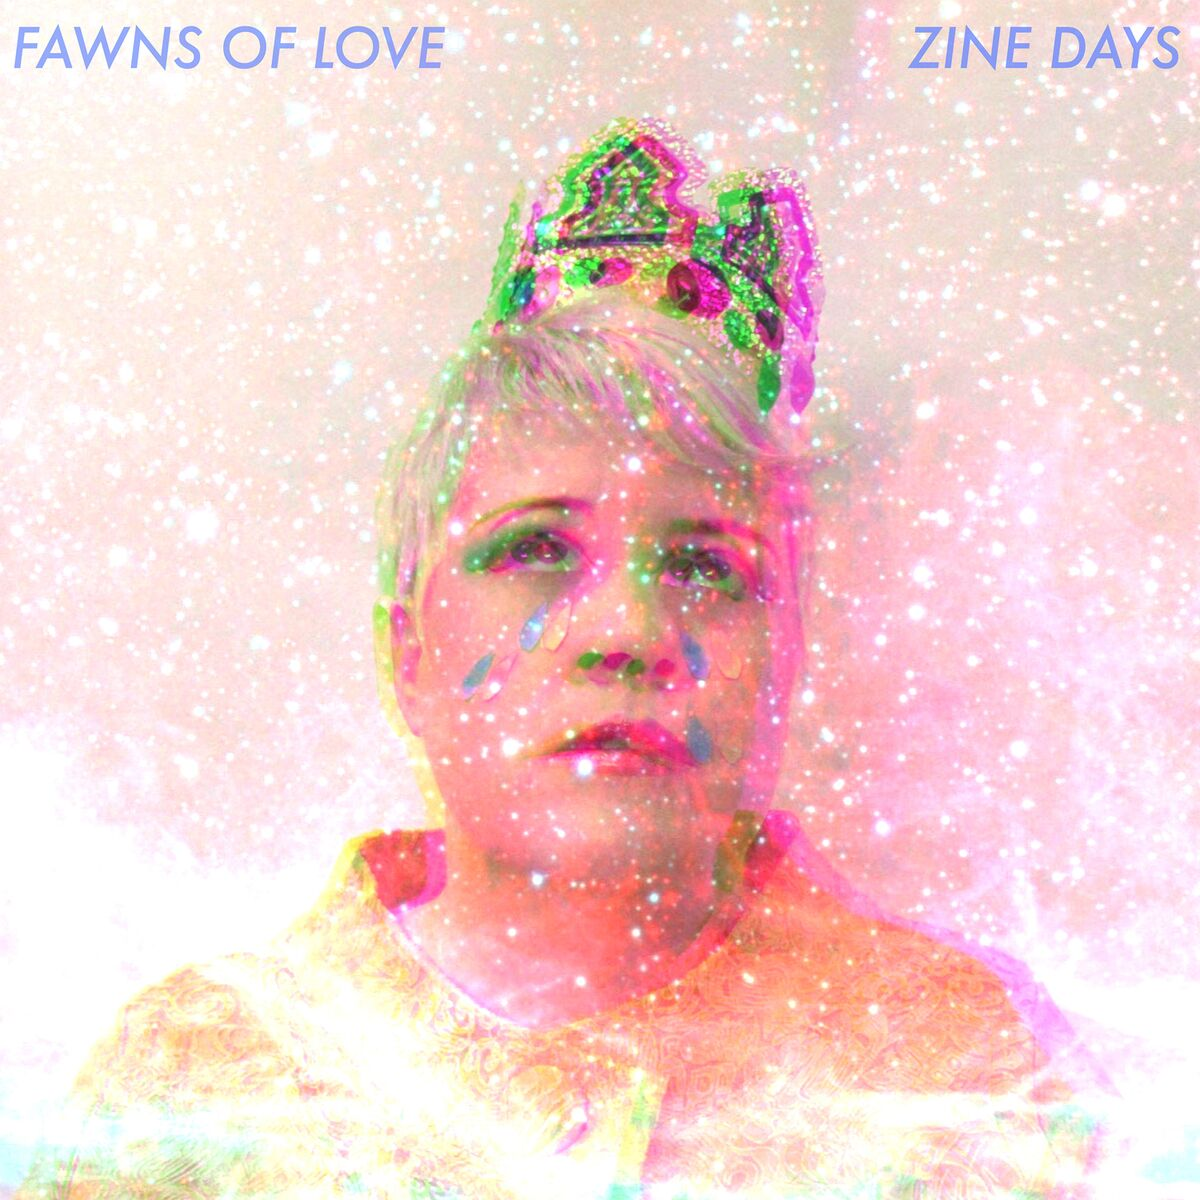 Fawns of Love